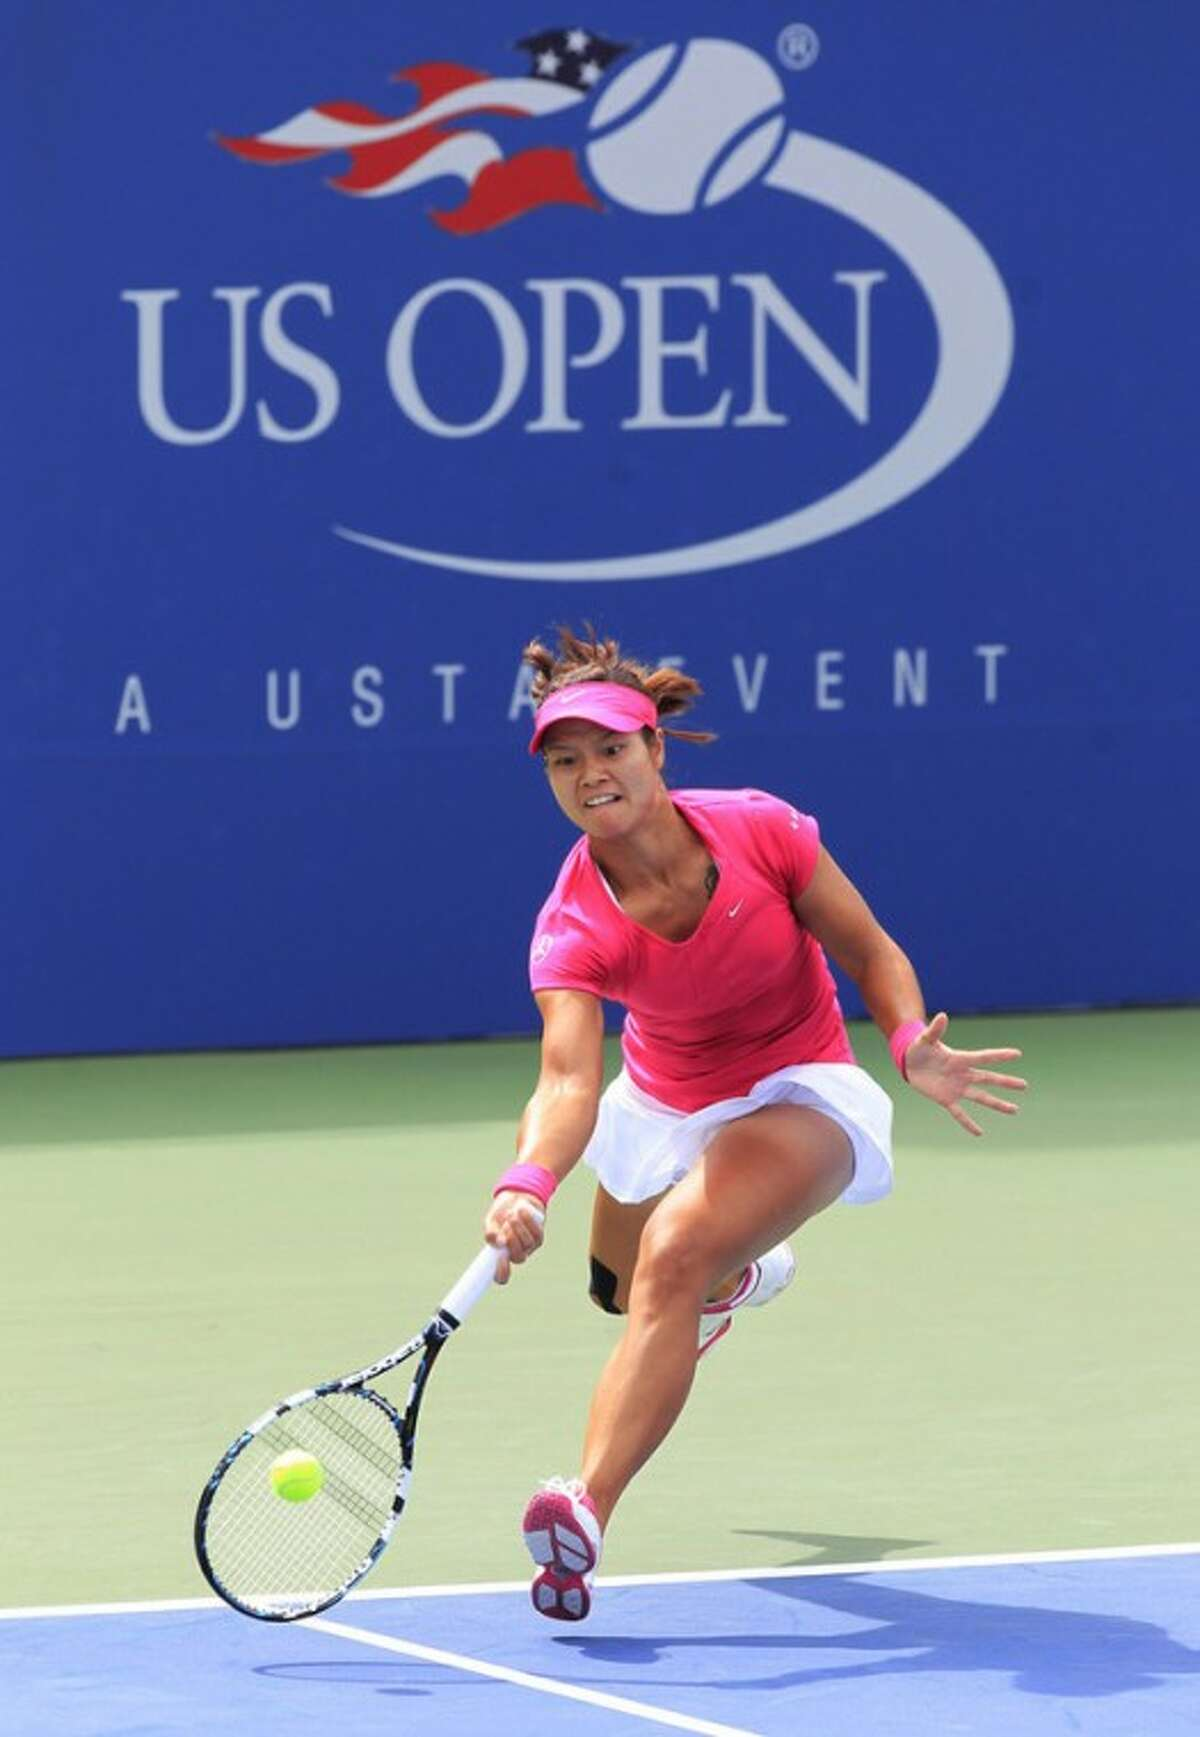 China's Li Na returns a shot to Britain's Heather Watson at the 2012 US Open Tennis tournament, Monday, Aug. 27, 2012, in New York. (AP Photo/Paul Bereswill)